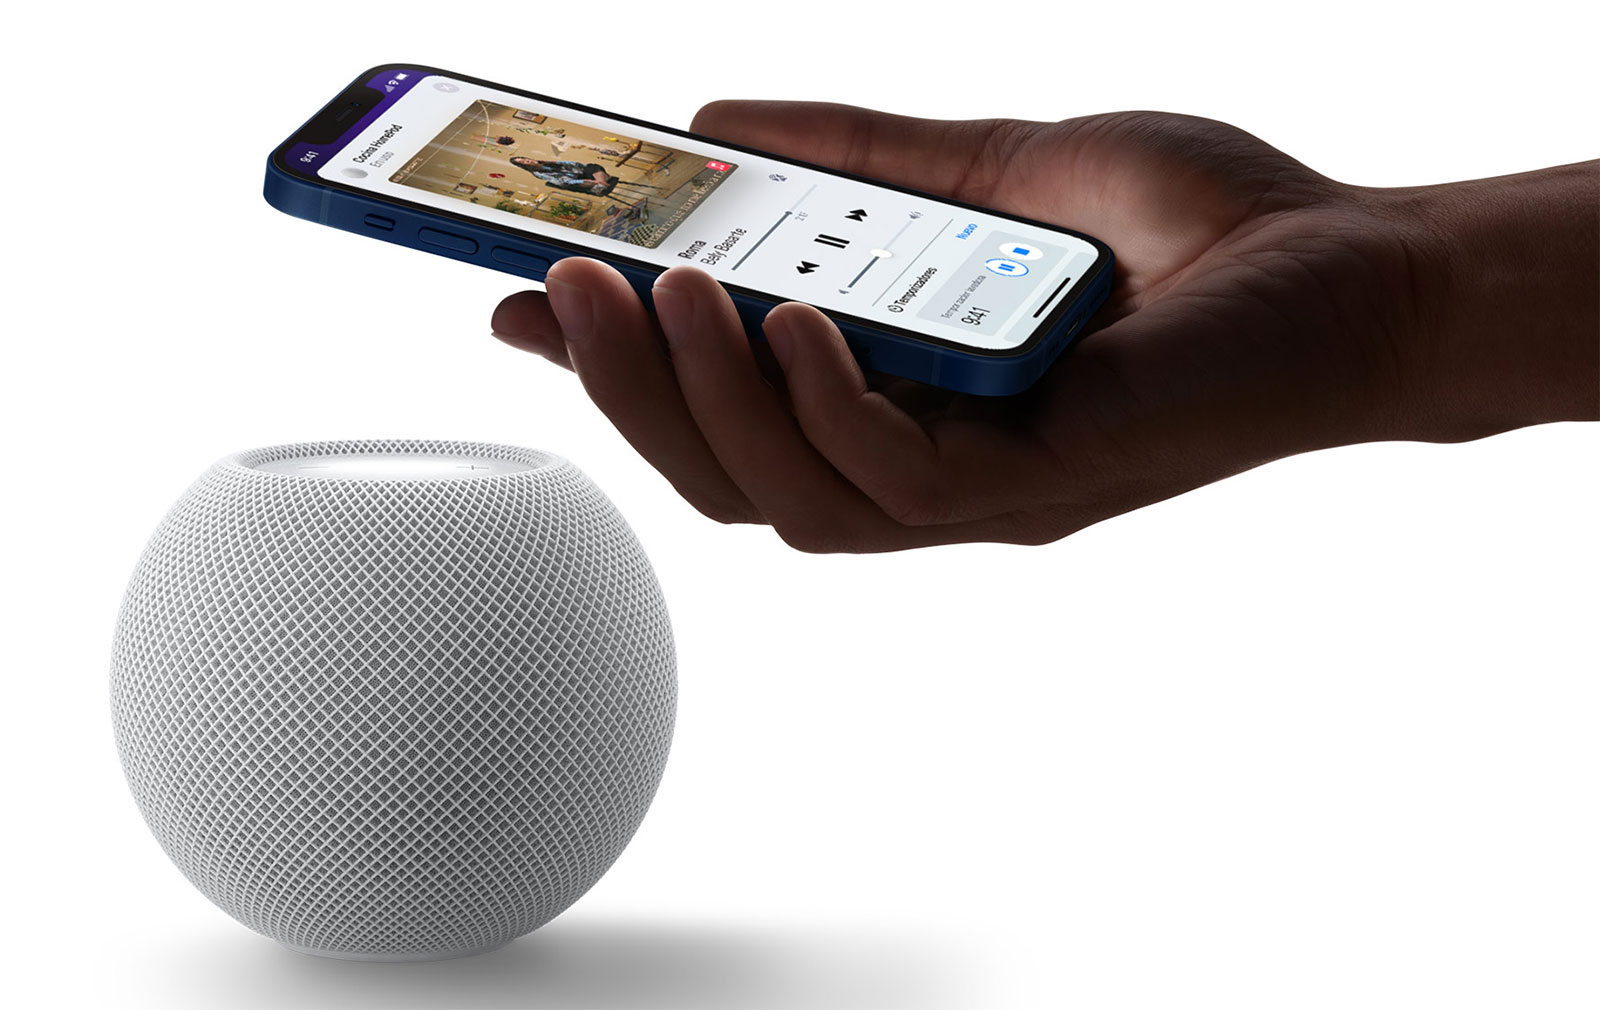 iPhone cerca del HomePod mini, utilizando el chip U1 Ultra Wideband